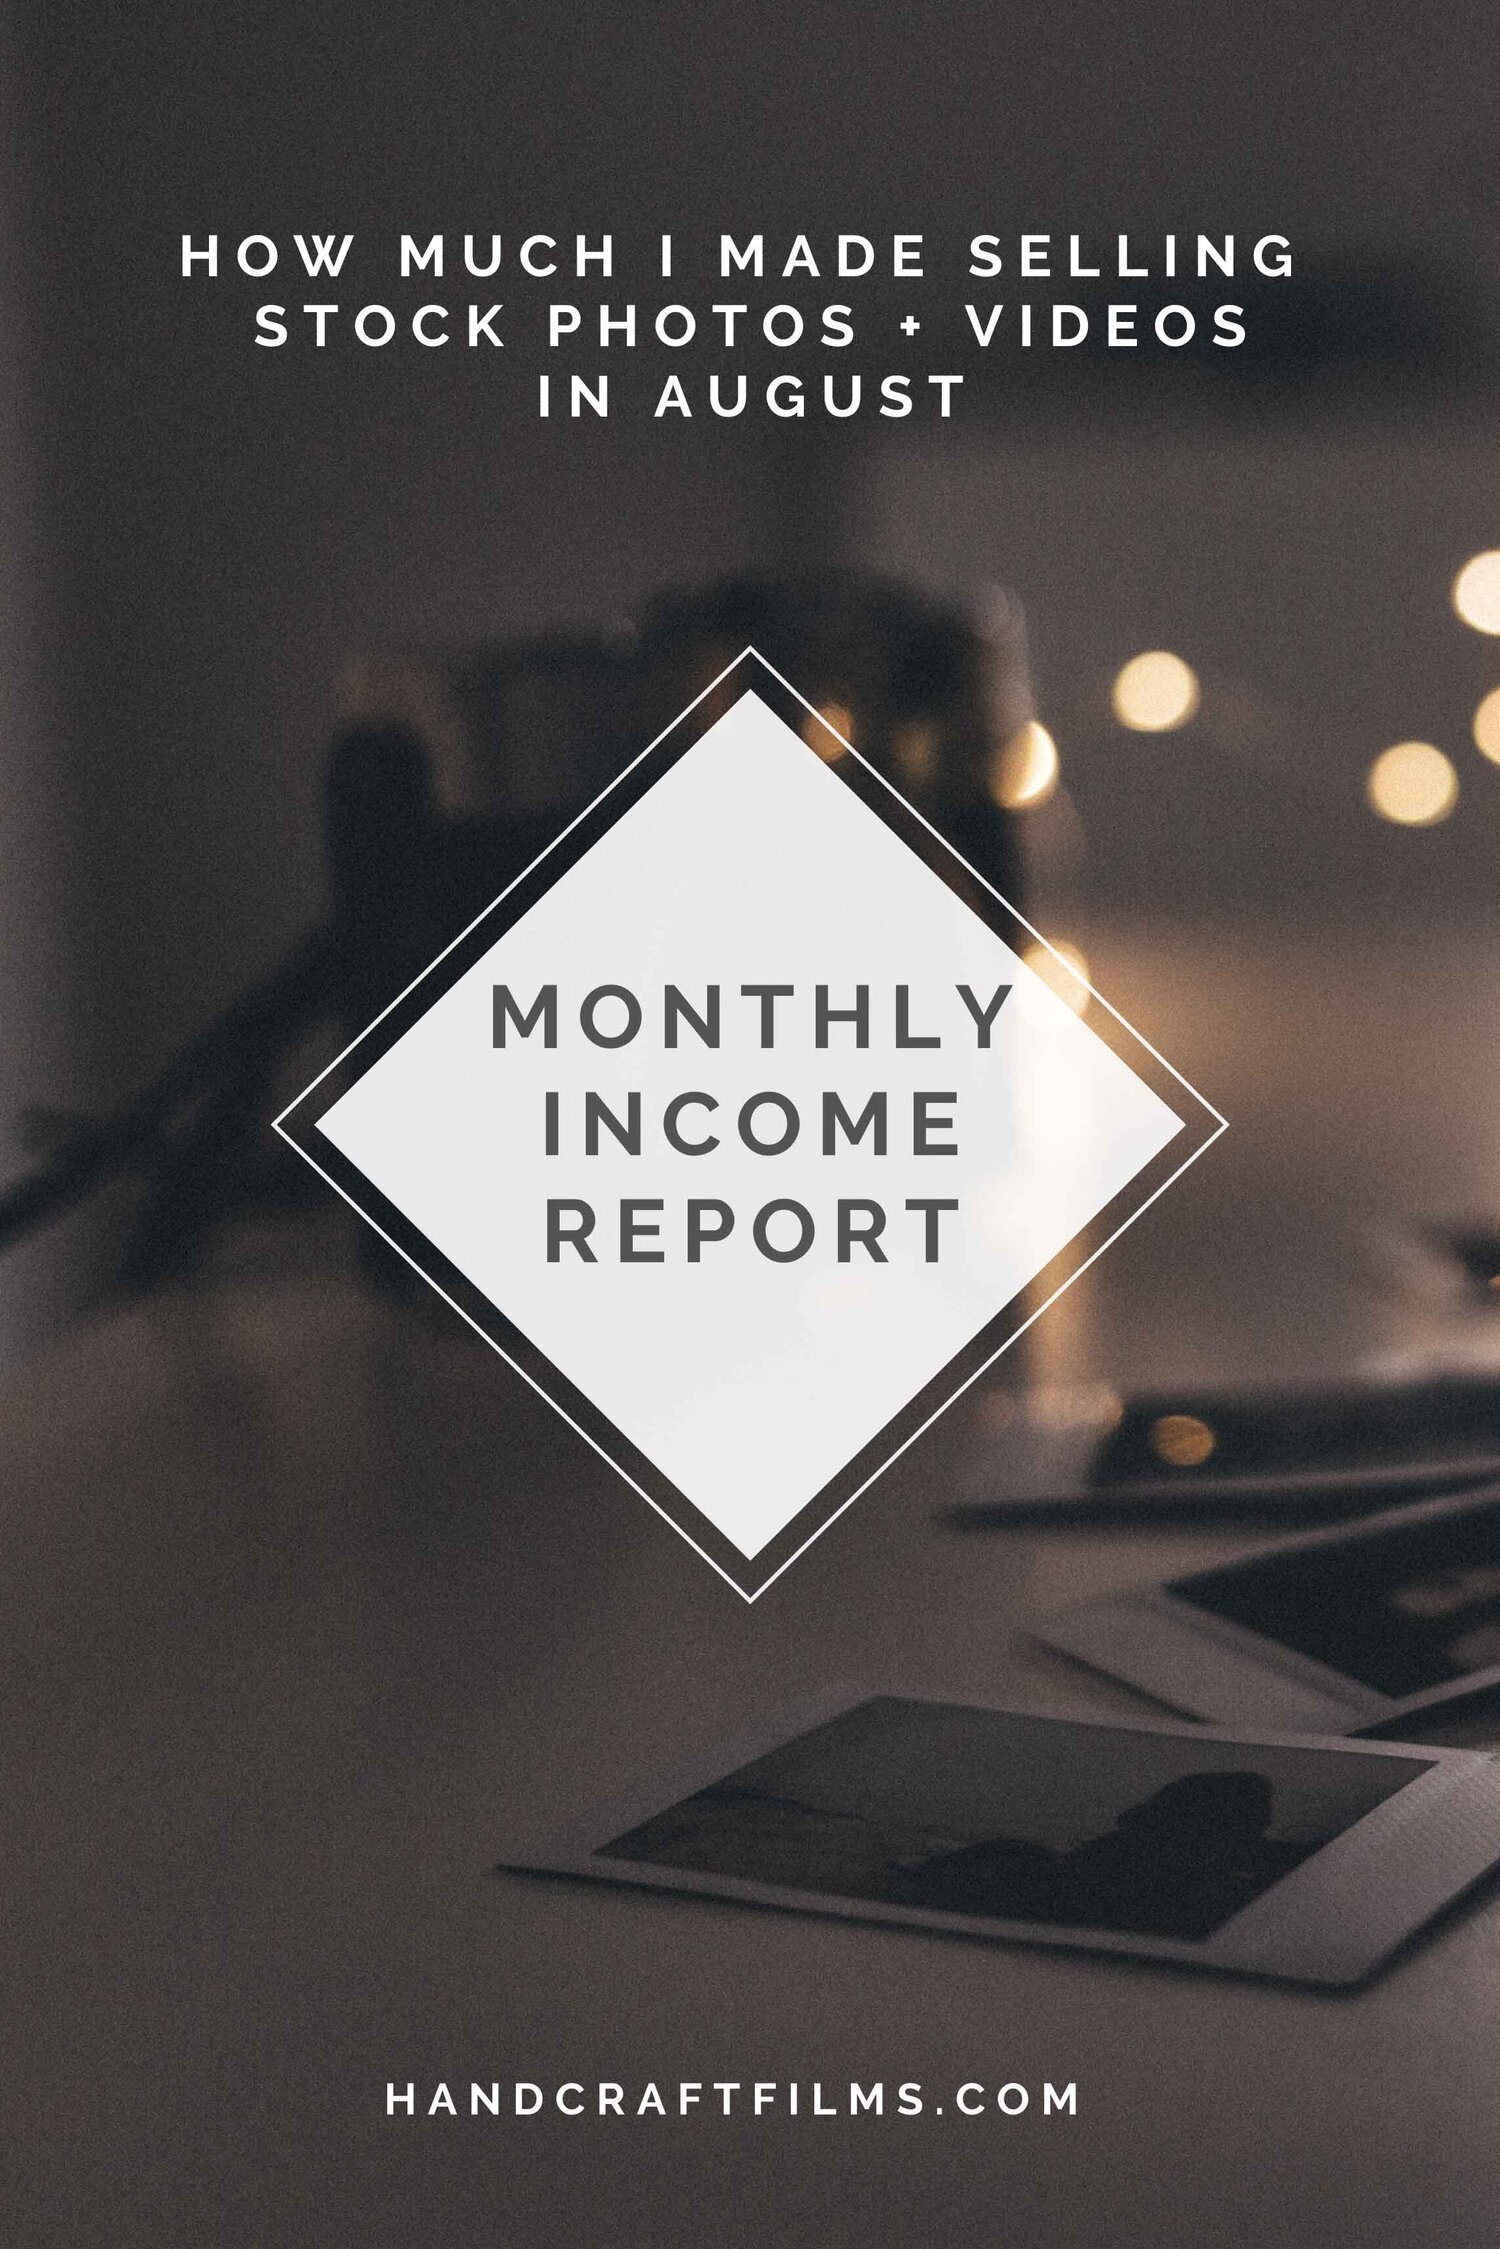 Monthly stock photo earnings for August 2019